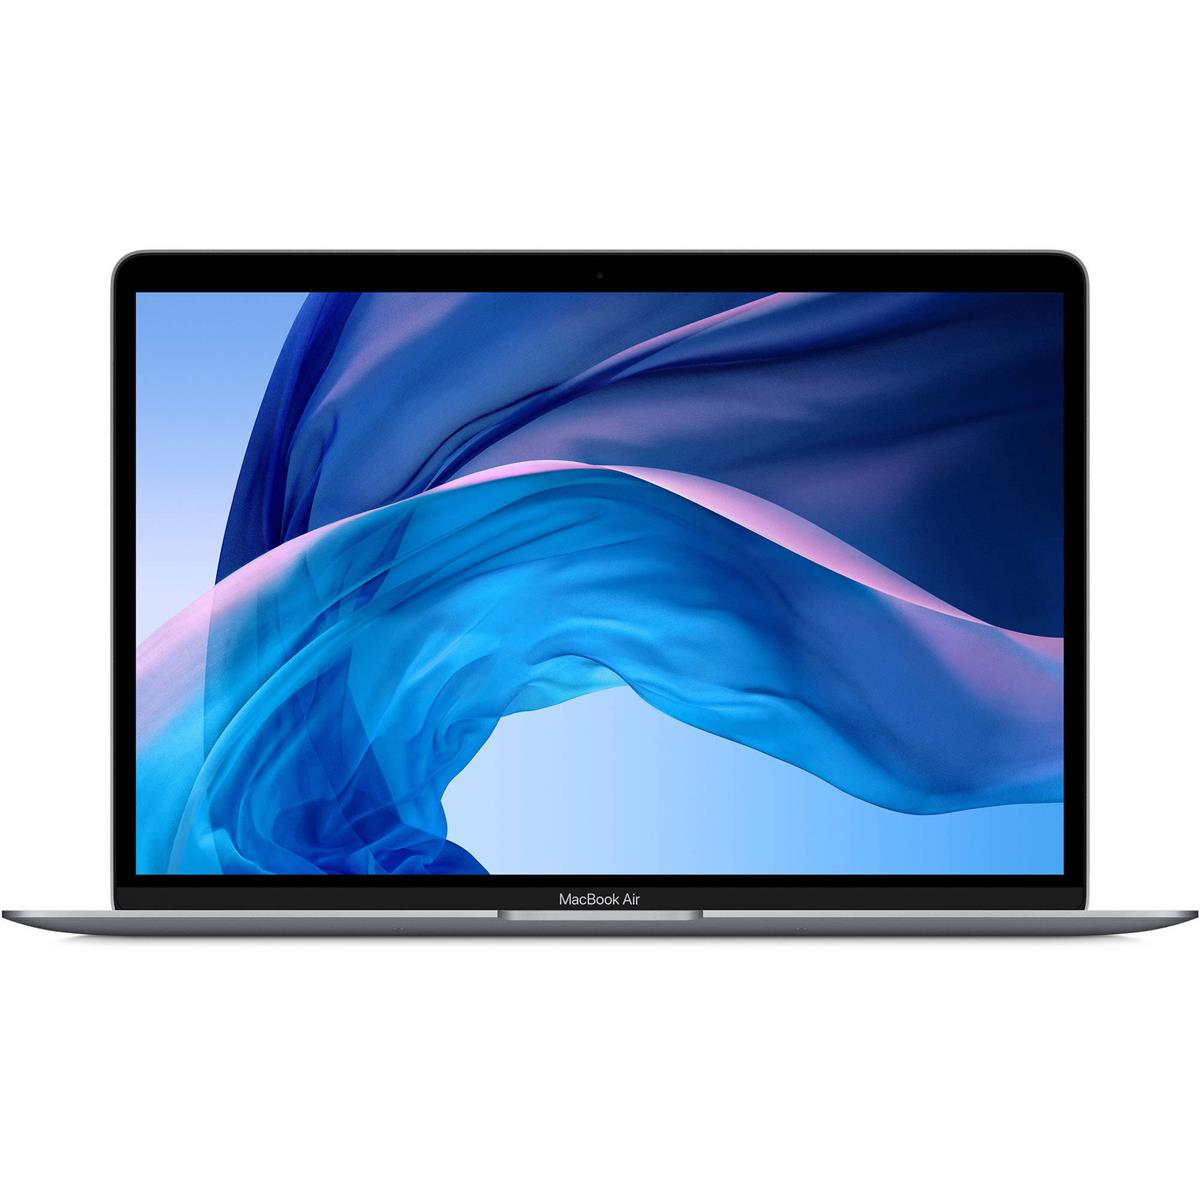 "Apple MacBook Air 13.3"" with Retina Display, 1.2GHz Quad-Core Intel Core i7, 16GB Memory, 512GB SSD, Space Gray (Early 2020)"